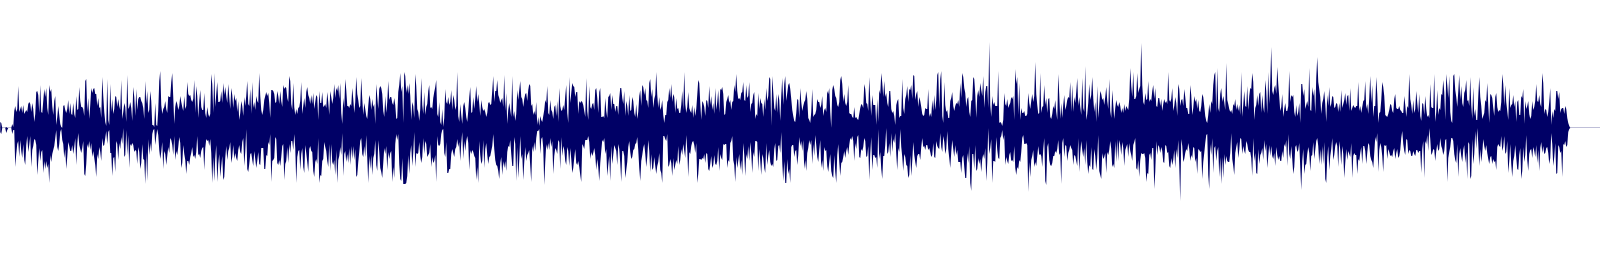 waveform of track #148887